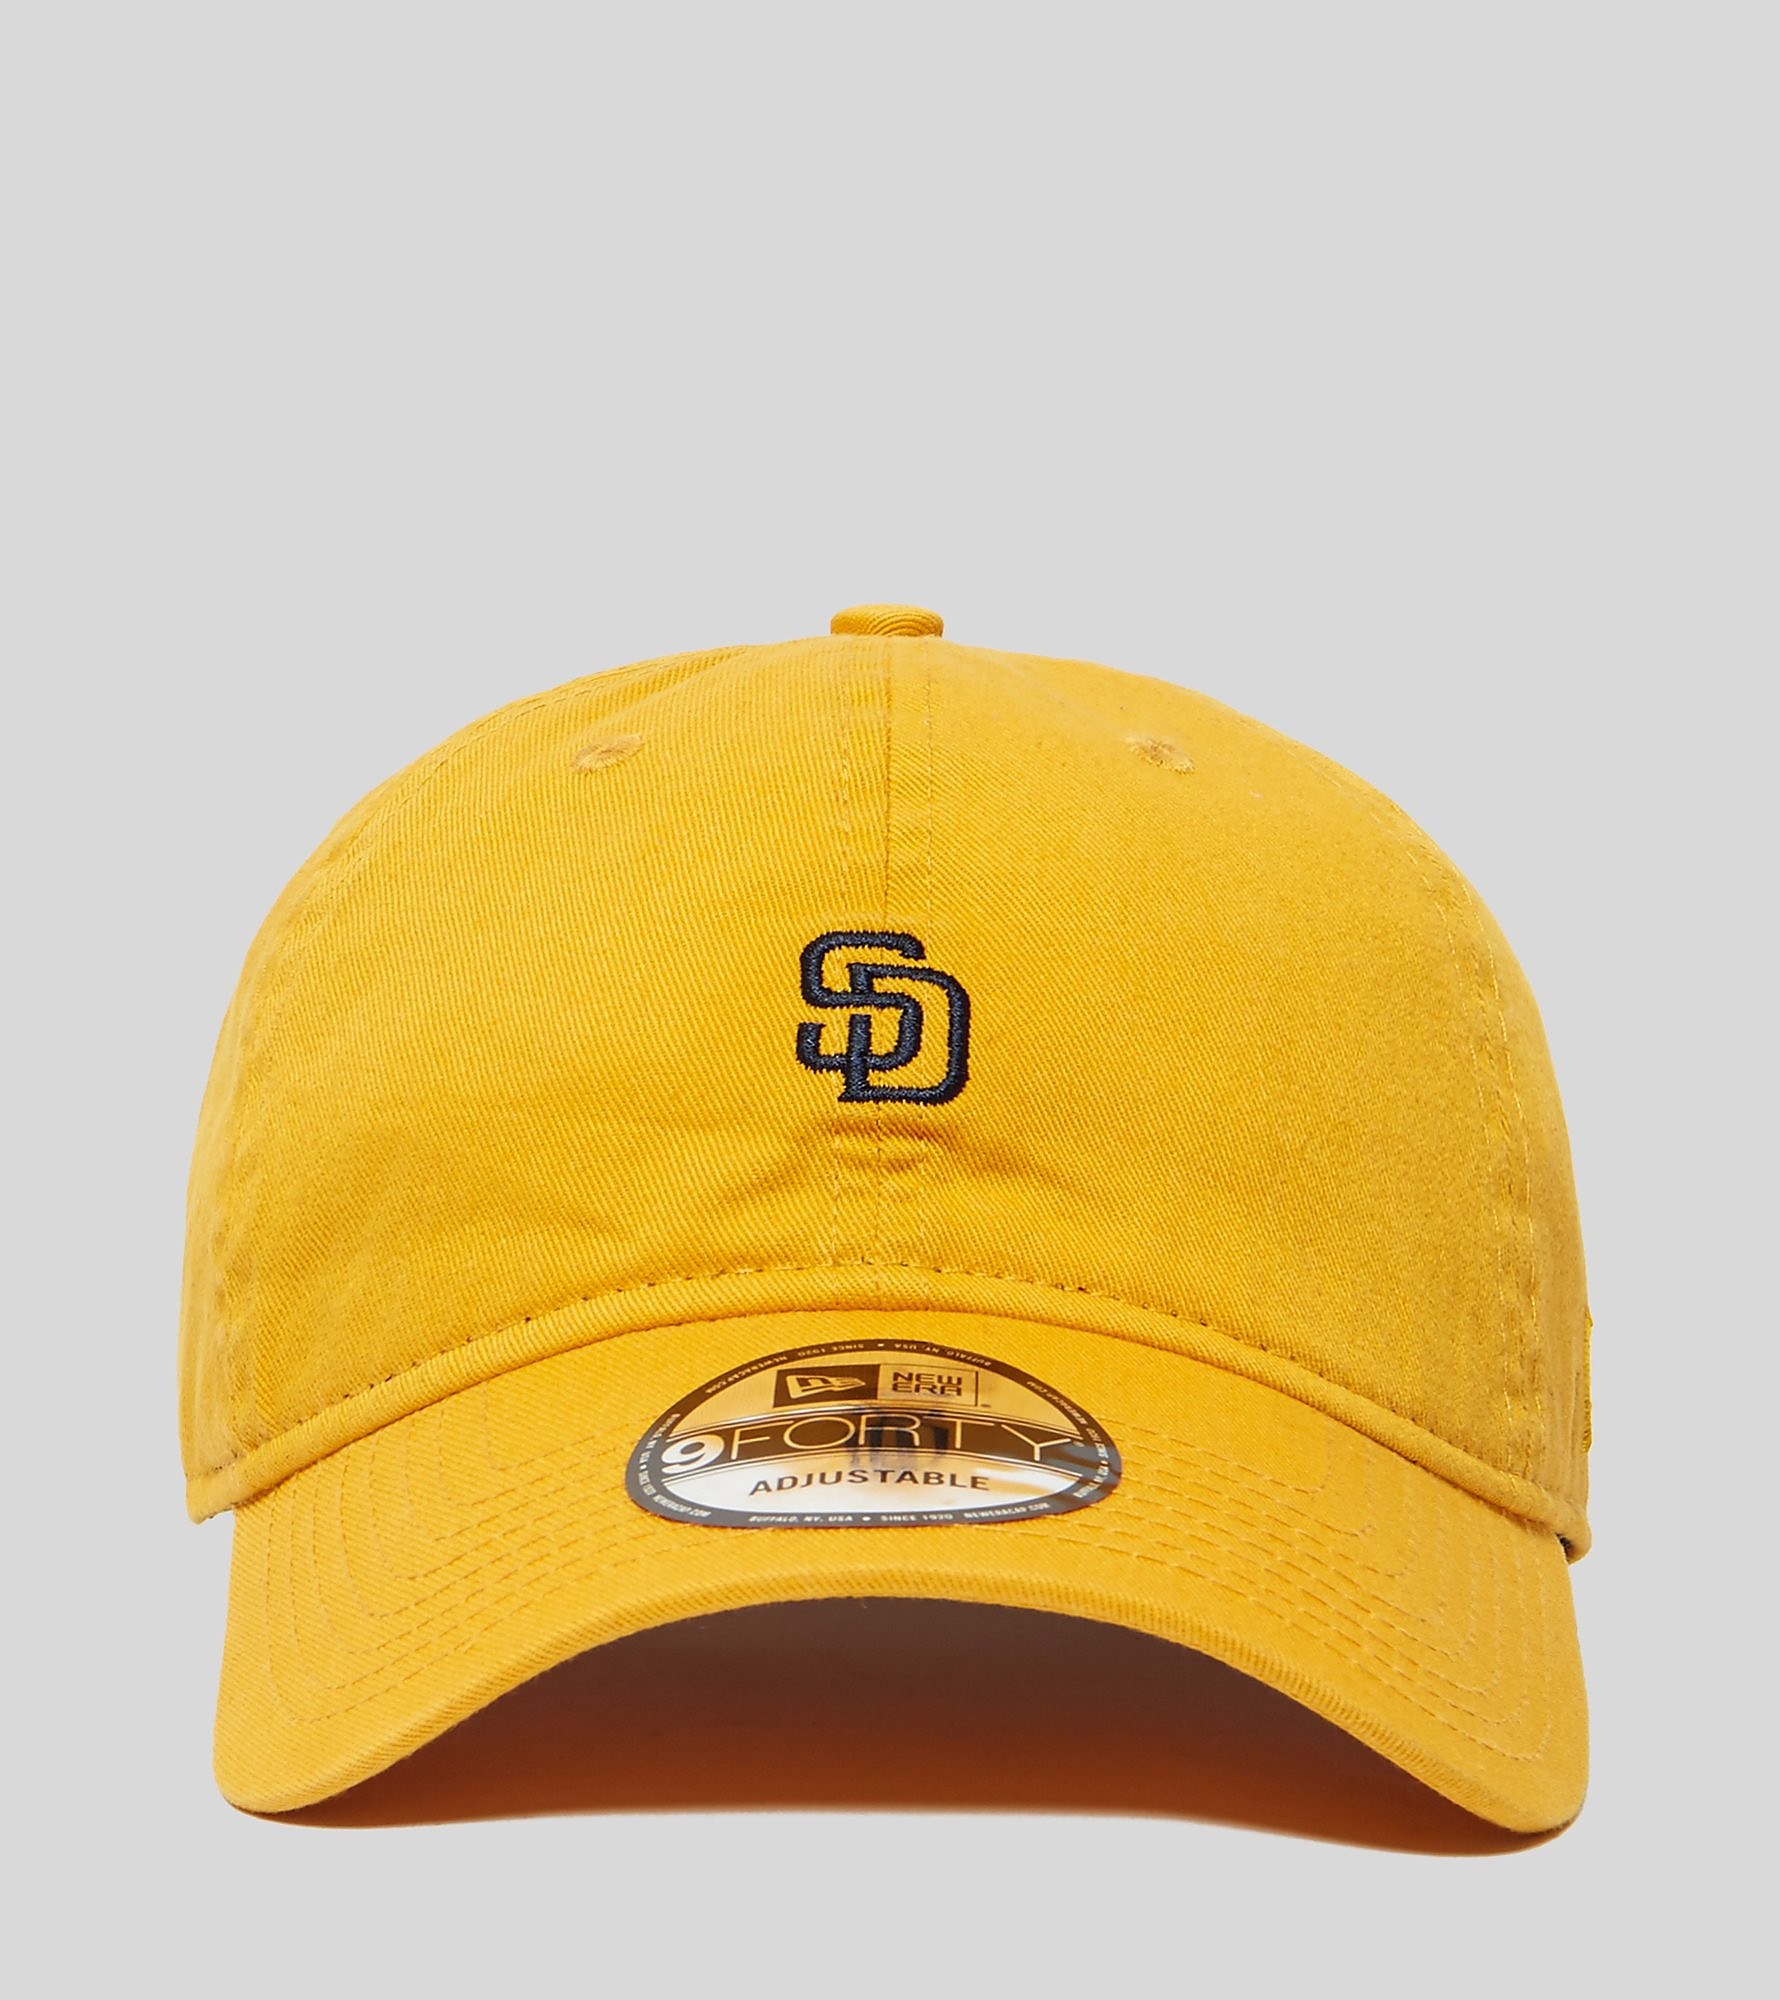 New Era 9FORTY San Diego Cap - size? Exclusive